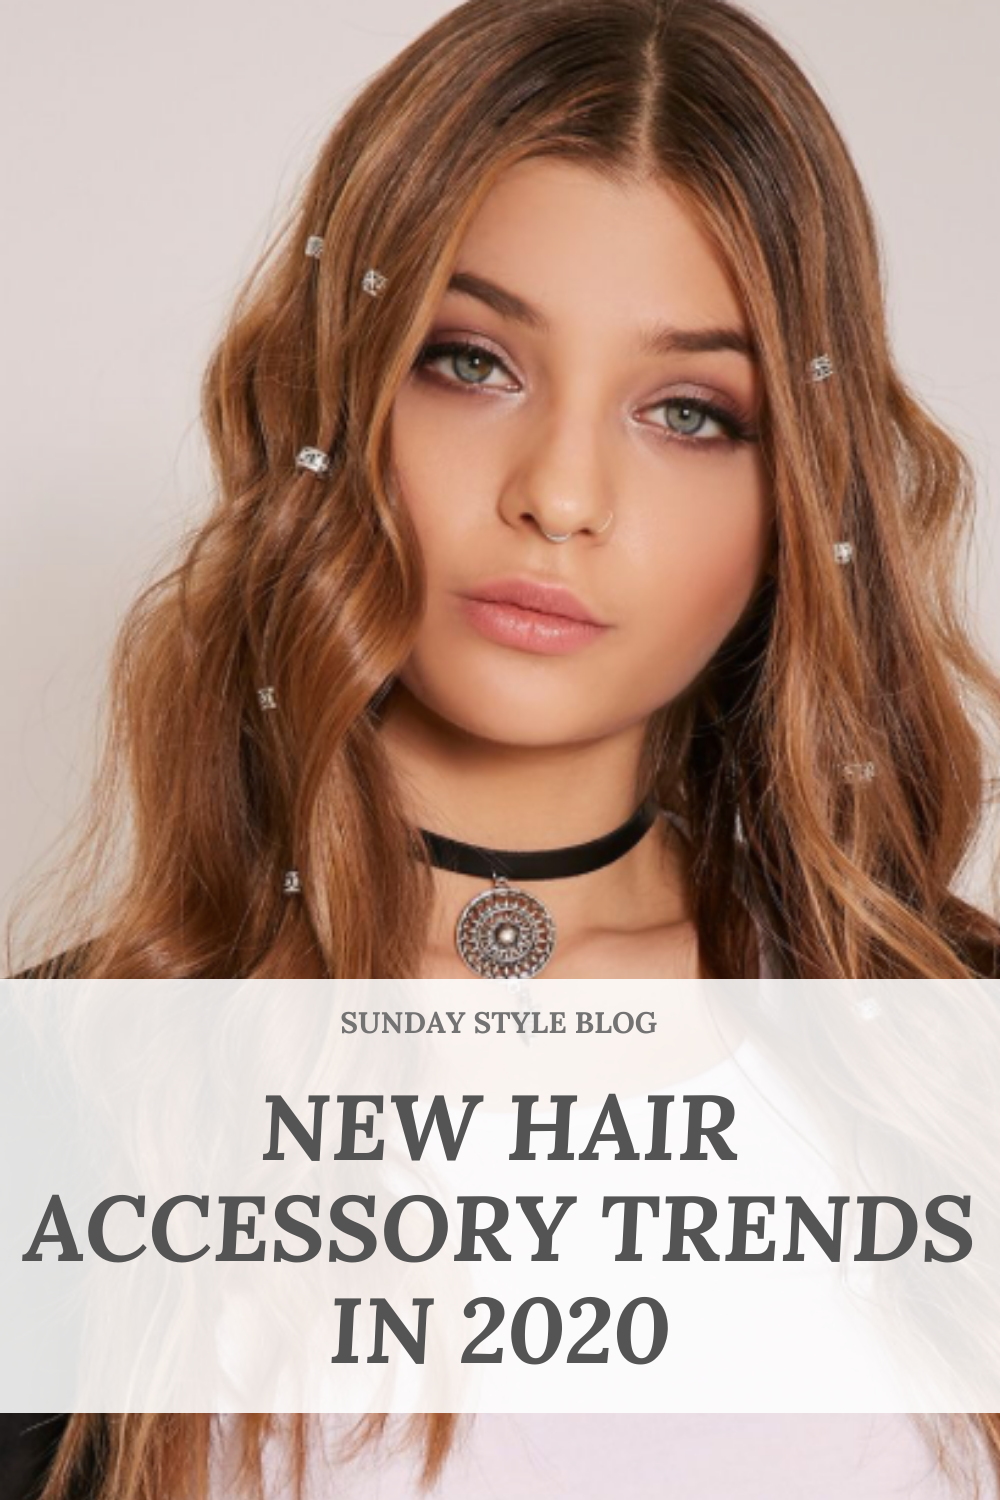 Women S Hair Accessory Trends In 2020 In 2020 Cool Hairstyles Hair Accessories For Women Everyday Hairstyles